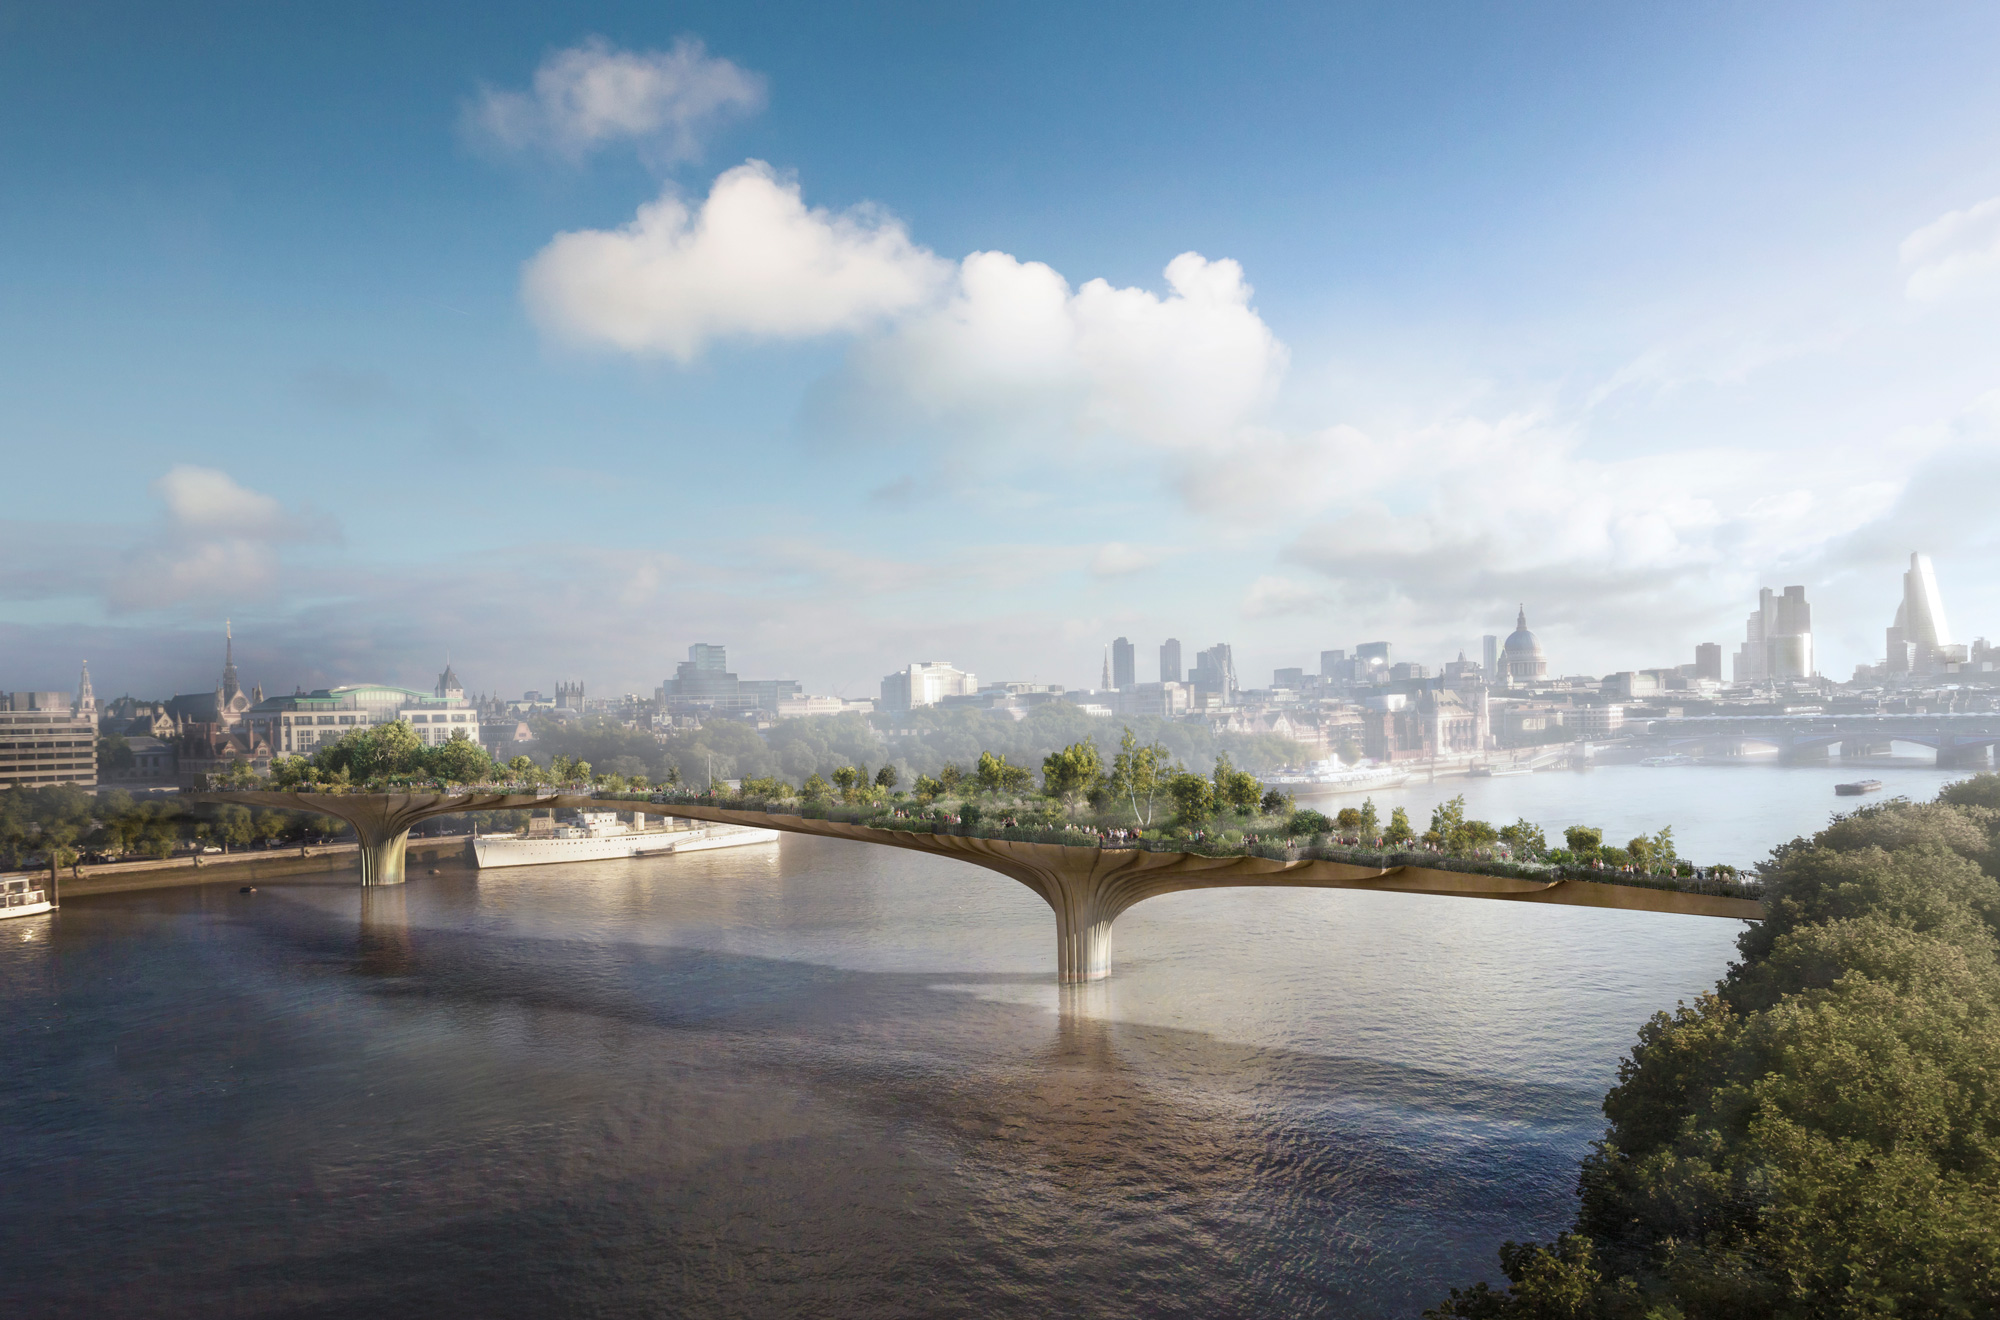 https://www.dotmug.net/wp-content/uploads/2015/06/london-garden-bridge.jpg